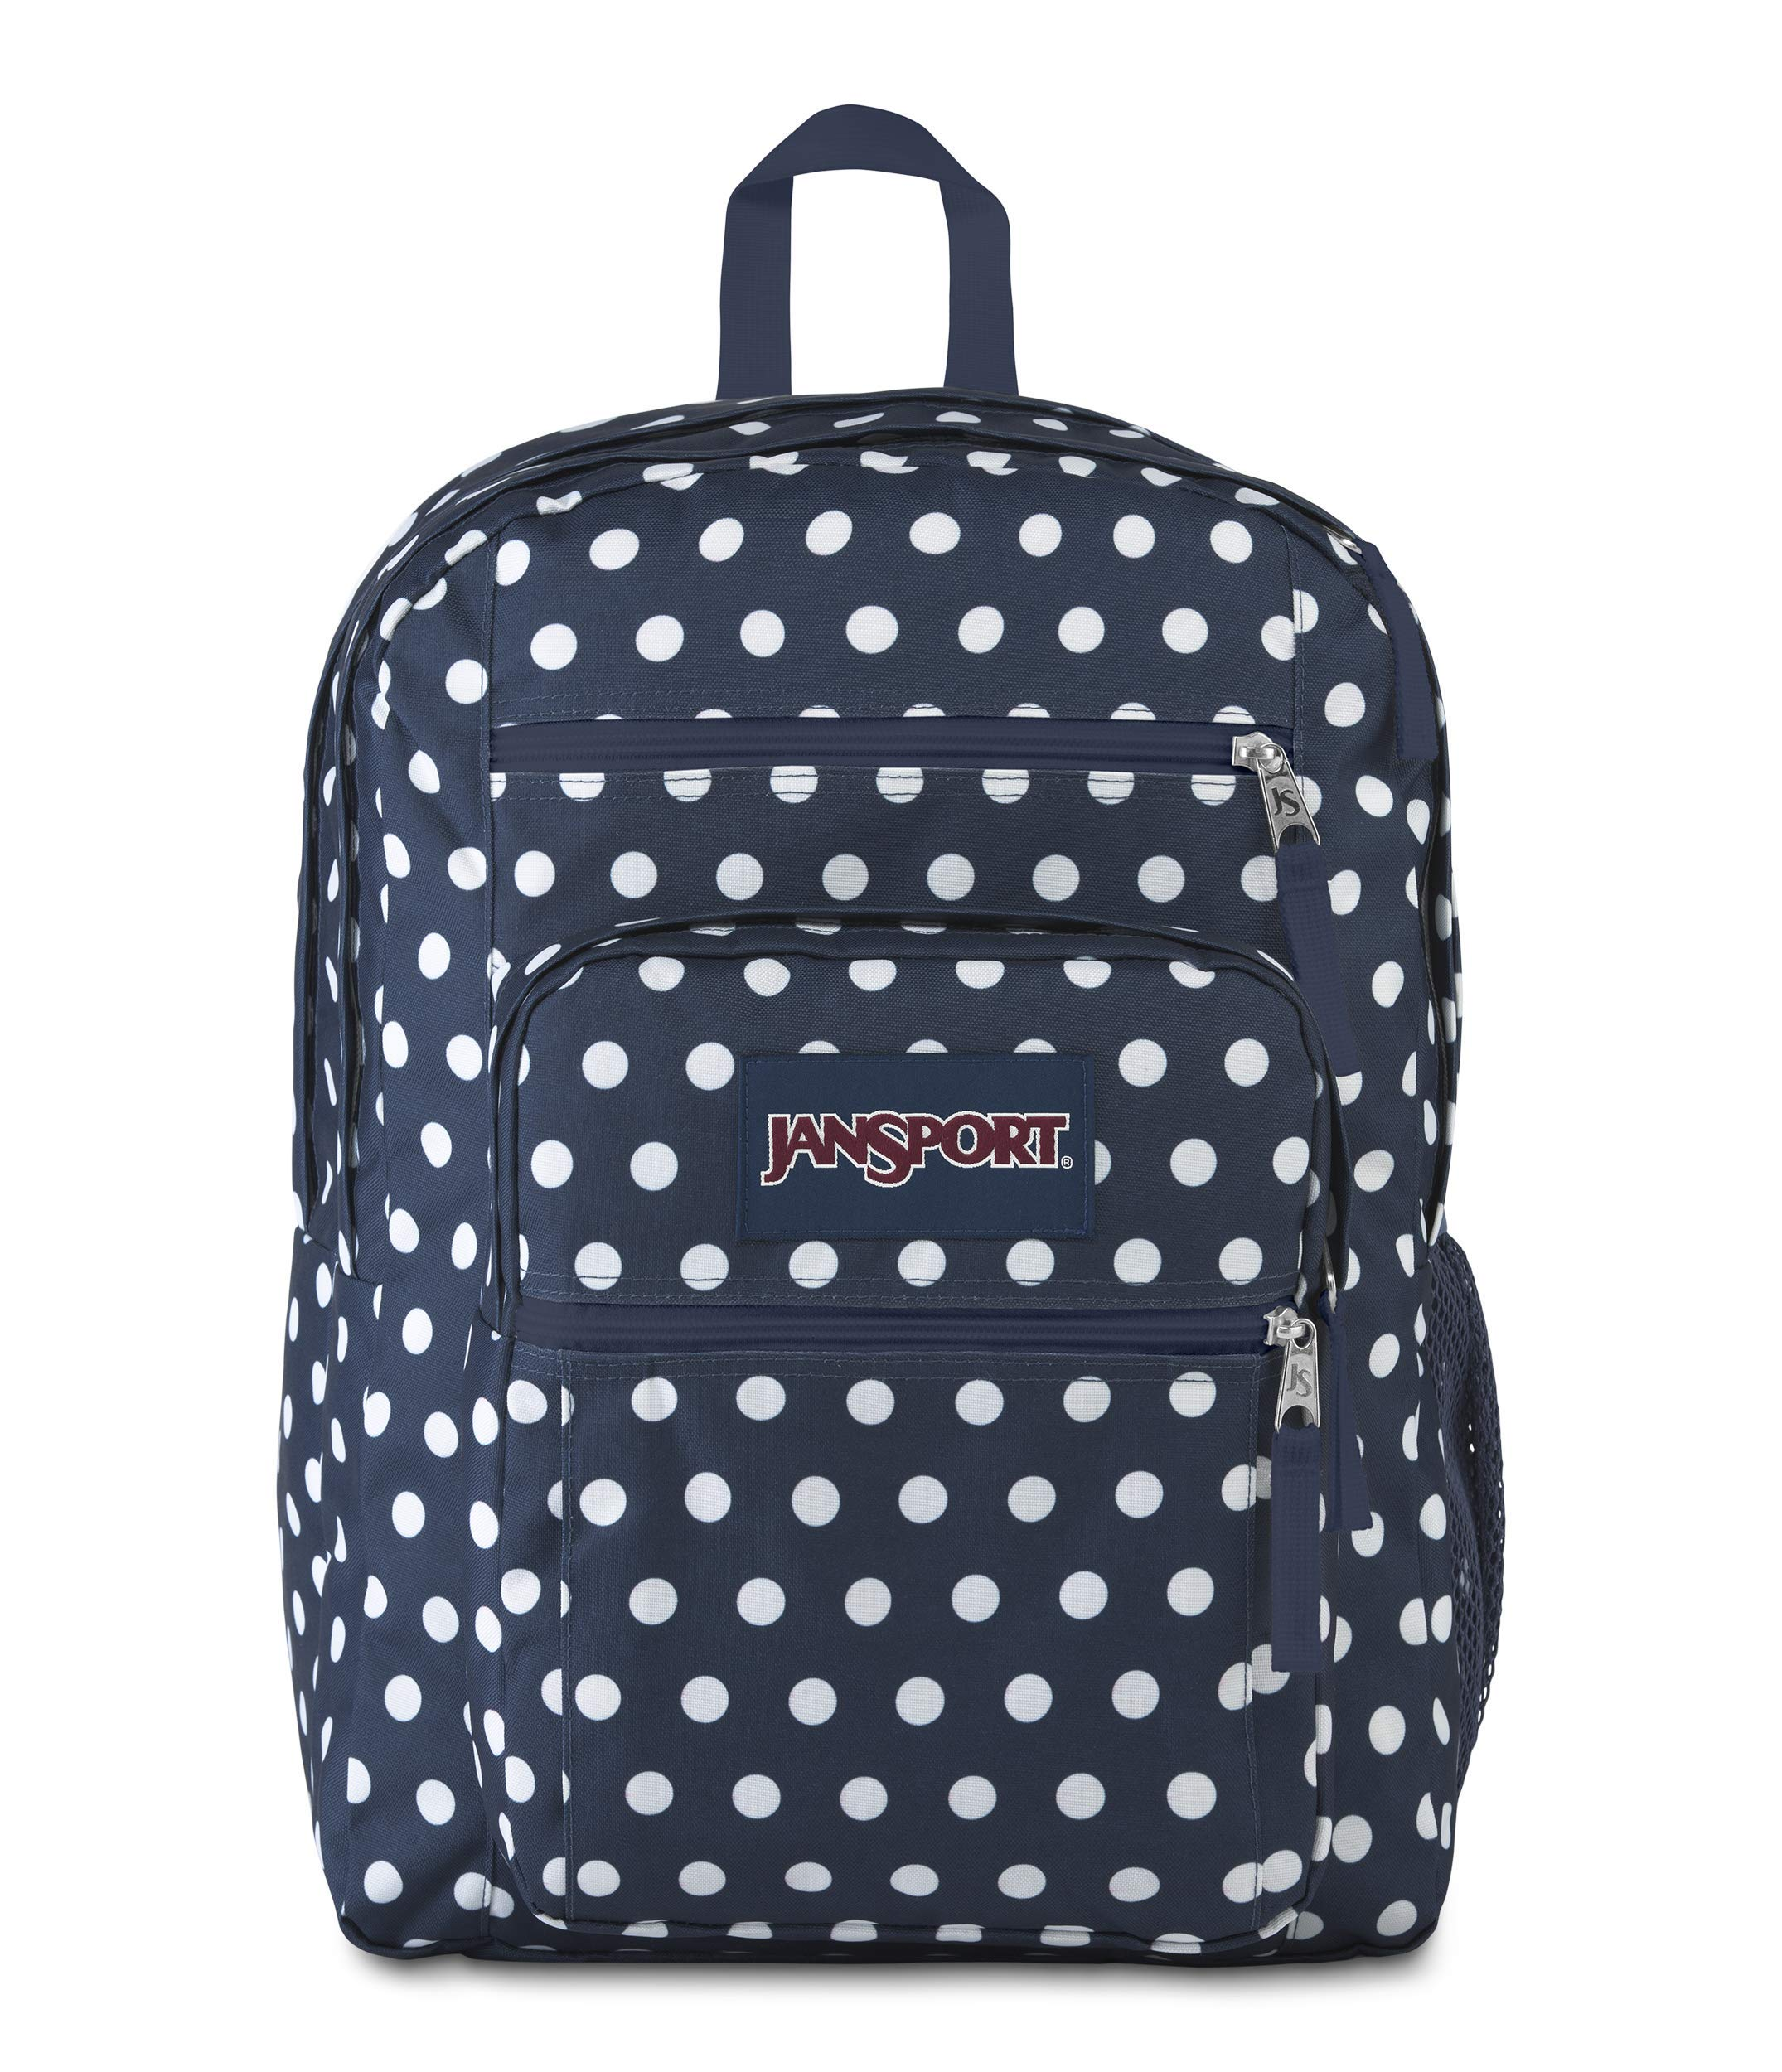 JanSport Big Student Backpack - 15-inch Laptop School Bag, Dark Demin Polka Dot by JanSport